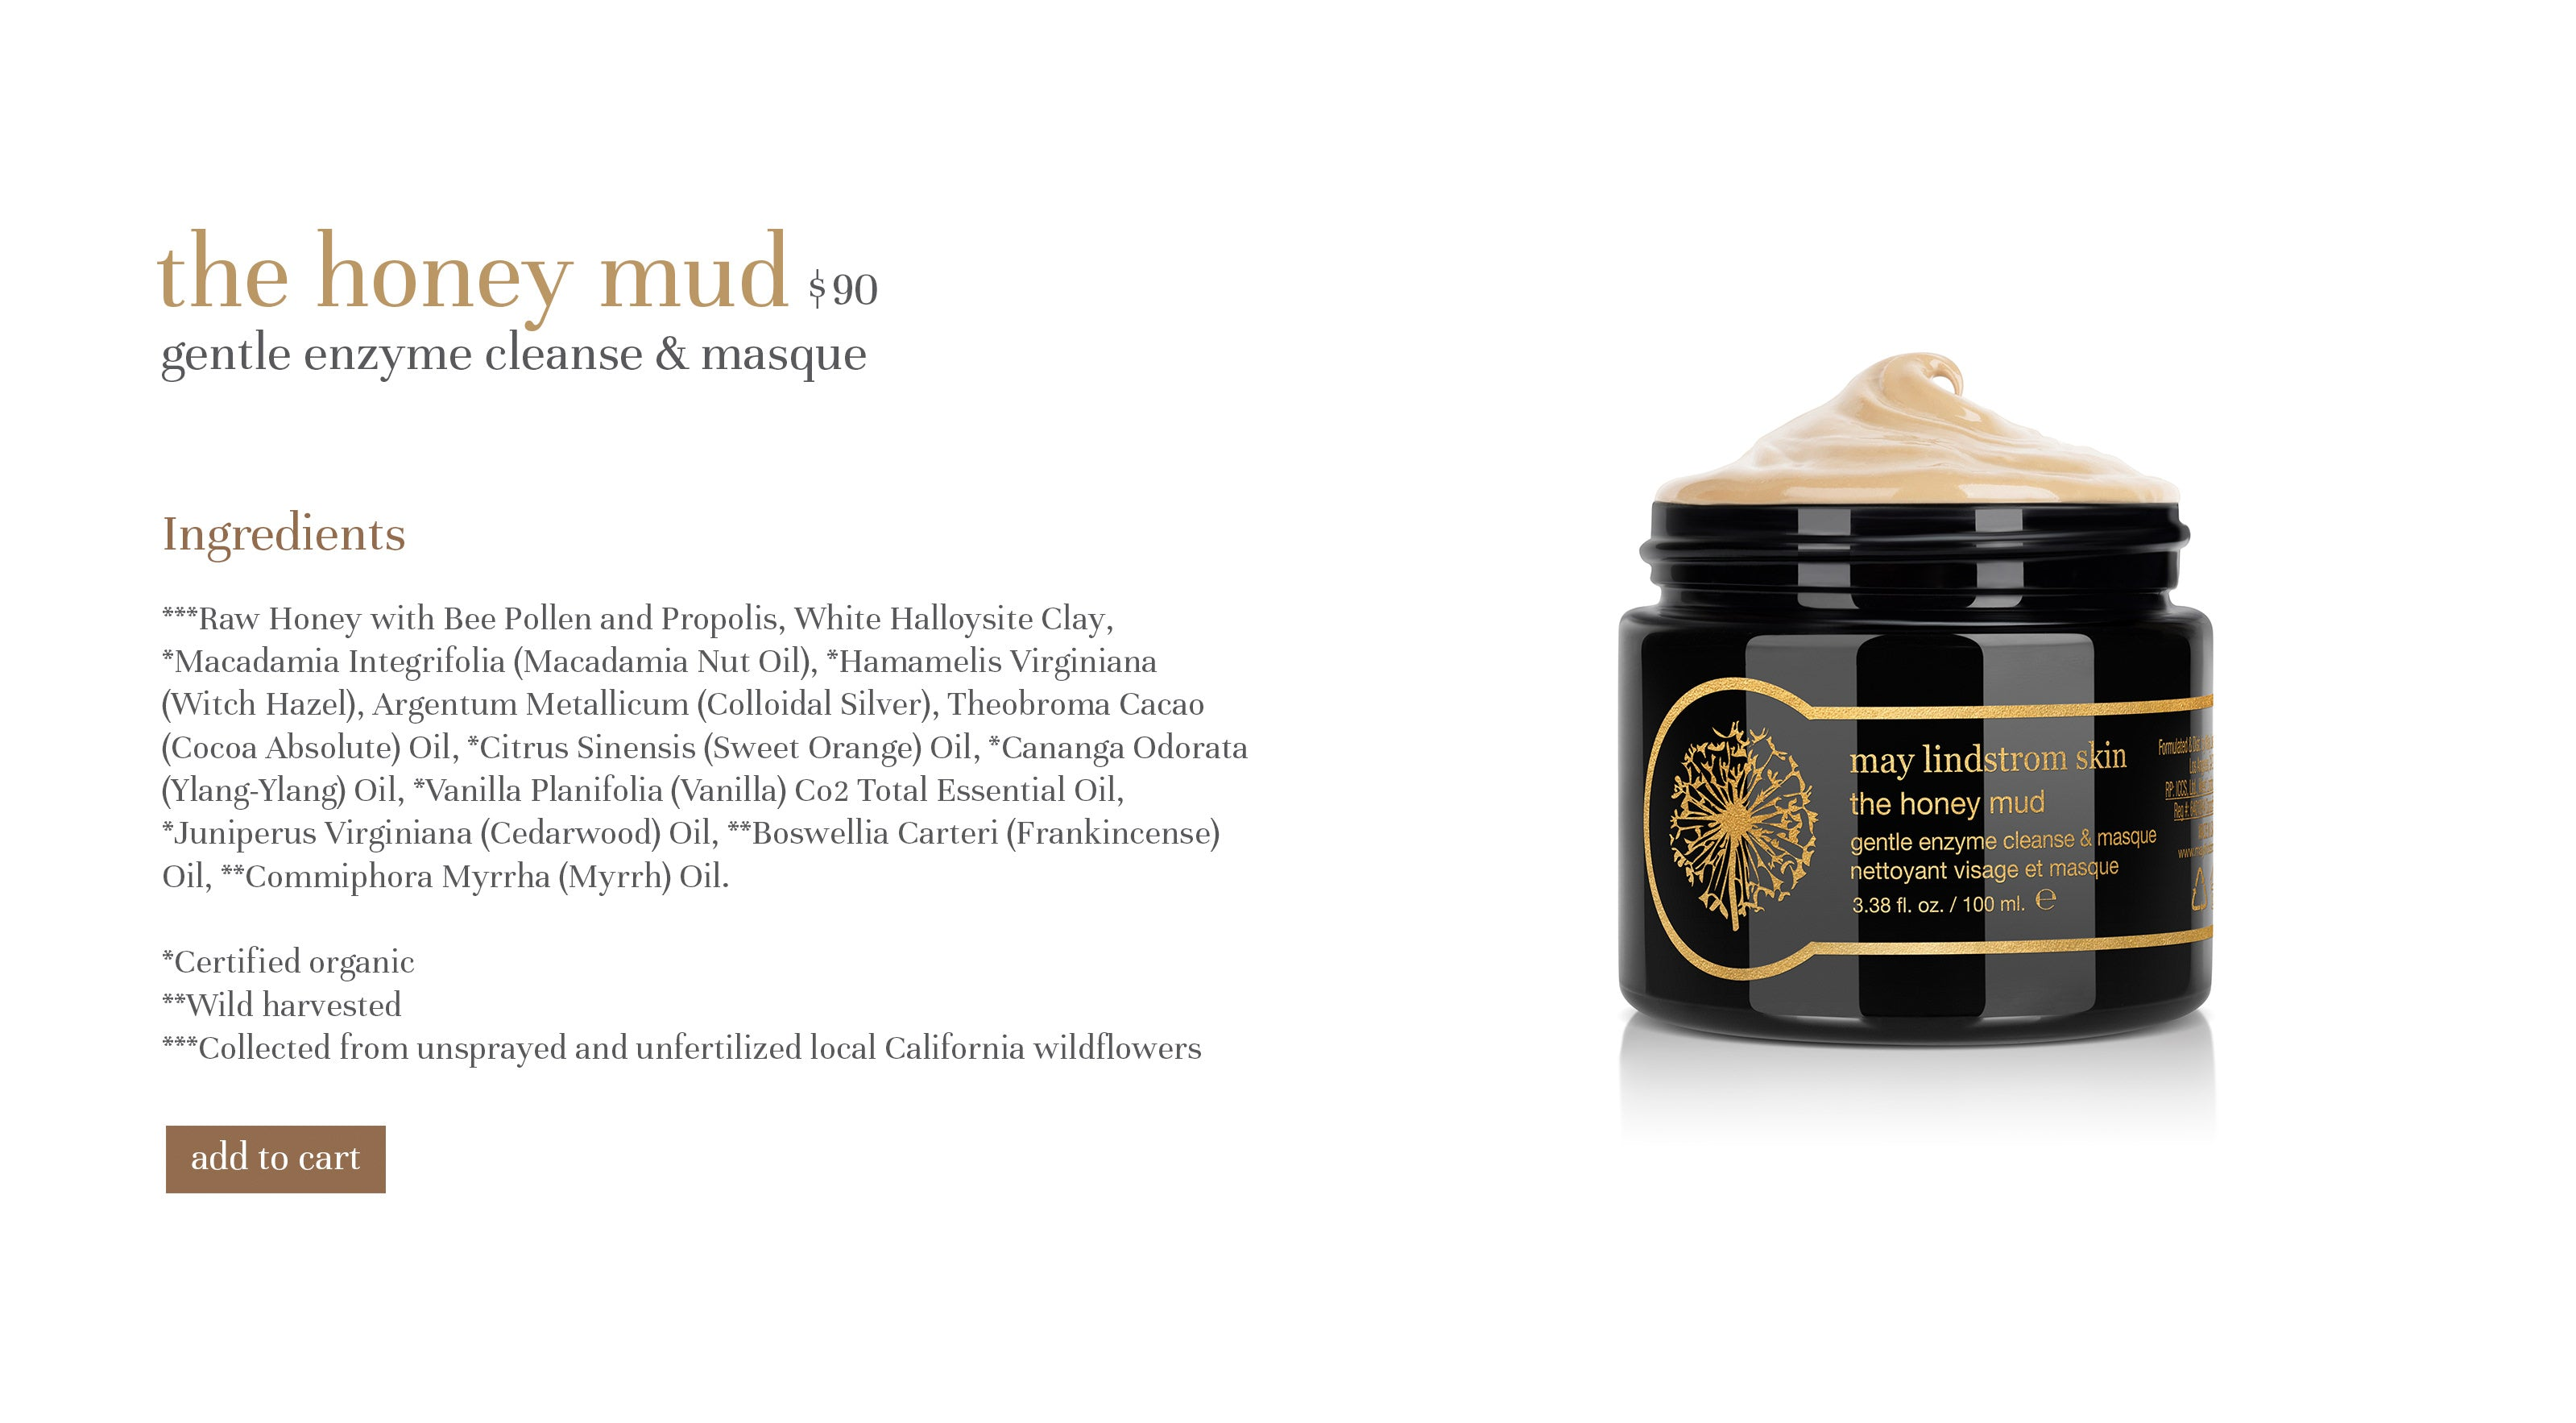 the honey mud $80 gentle enzyme cleanse & masque Ingredients ***Raw Honey with Bee Pollen and Propolis, White Halloysite Clay, *Macadamia Integrifolia (Macadamia Nut Oil), *Hamamelis Virginiana (Witch Hazel), Argentum Metallicum (Colloidal Silver), Theobroma Cacao (Cocoa Absolute) Oil, *Citrus Sinensis (Sweet Orange) Oil, *Cananga Odorata (Ylang-Ylang) Oil, *Vanilla Planifolia (Vanilla) Co2 Total Essential Oil, *Juniperus Virginiana (Cedarwood) Oil, **Boswellia Carteri (Frankincense) Oil, **Commiphora Myrrha (Myrrh) Oil.  *Certified organic **Wild harvested ***Collected from unsprayed and unfertilized local California wildflowers